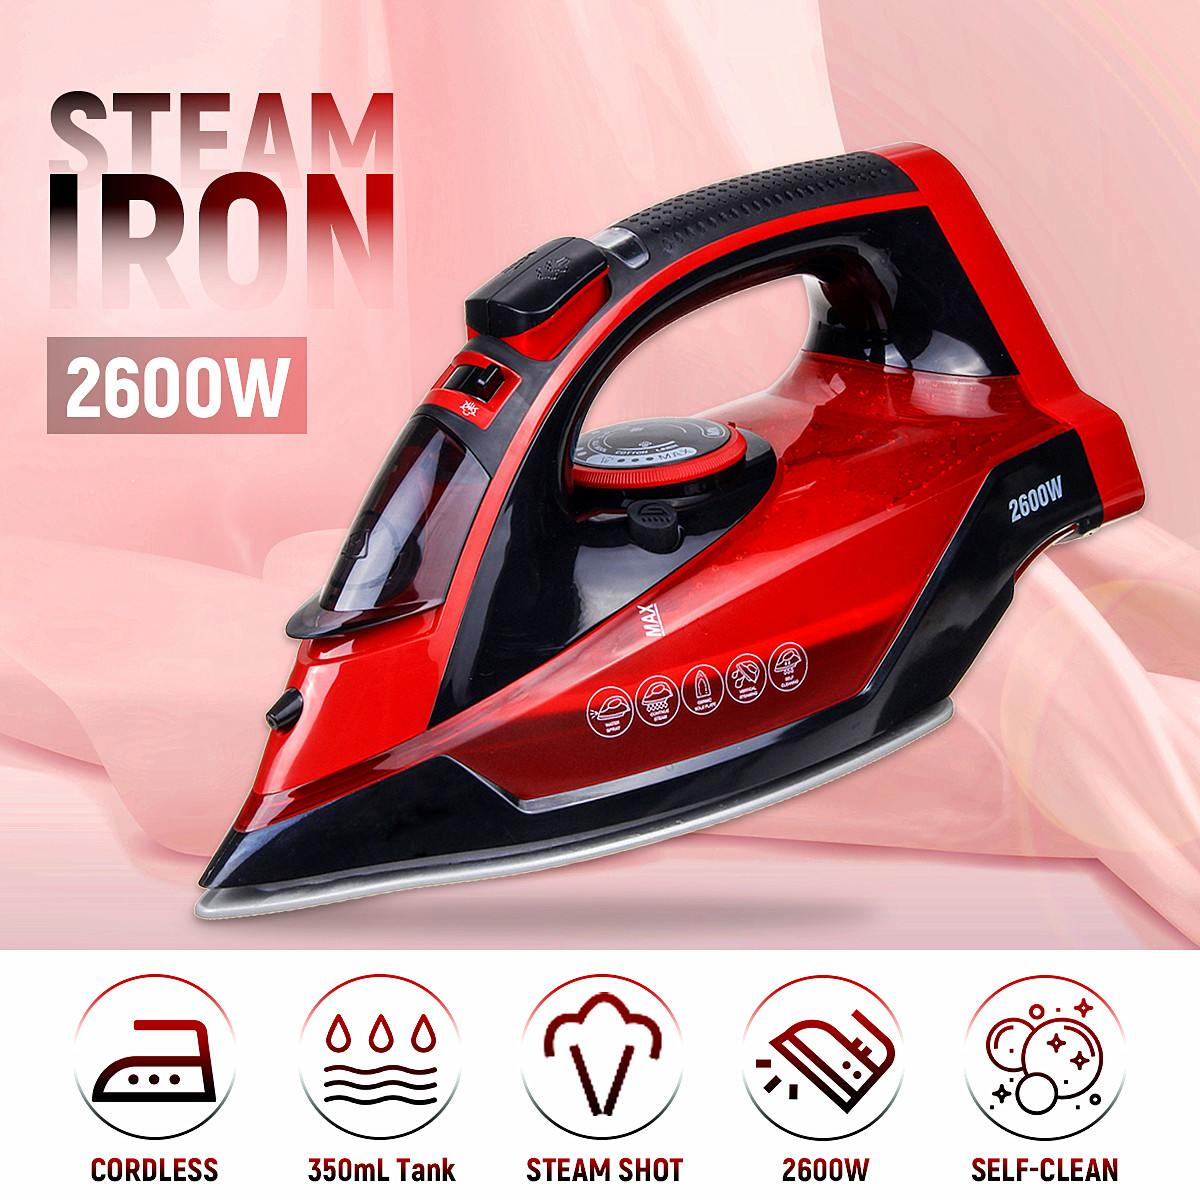 2400W Steam Iron 5 Speed Gear Shift Knob Wireless Charging Household Portable Clothes Ironing Steamer Ceramic